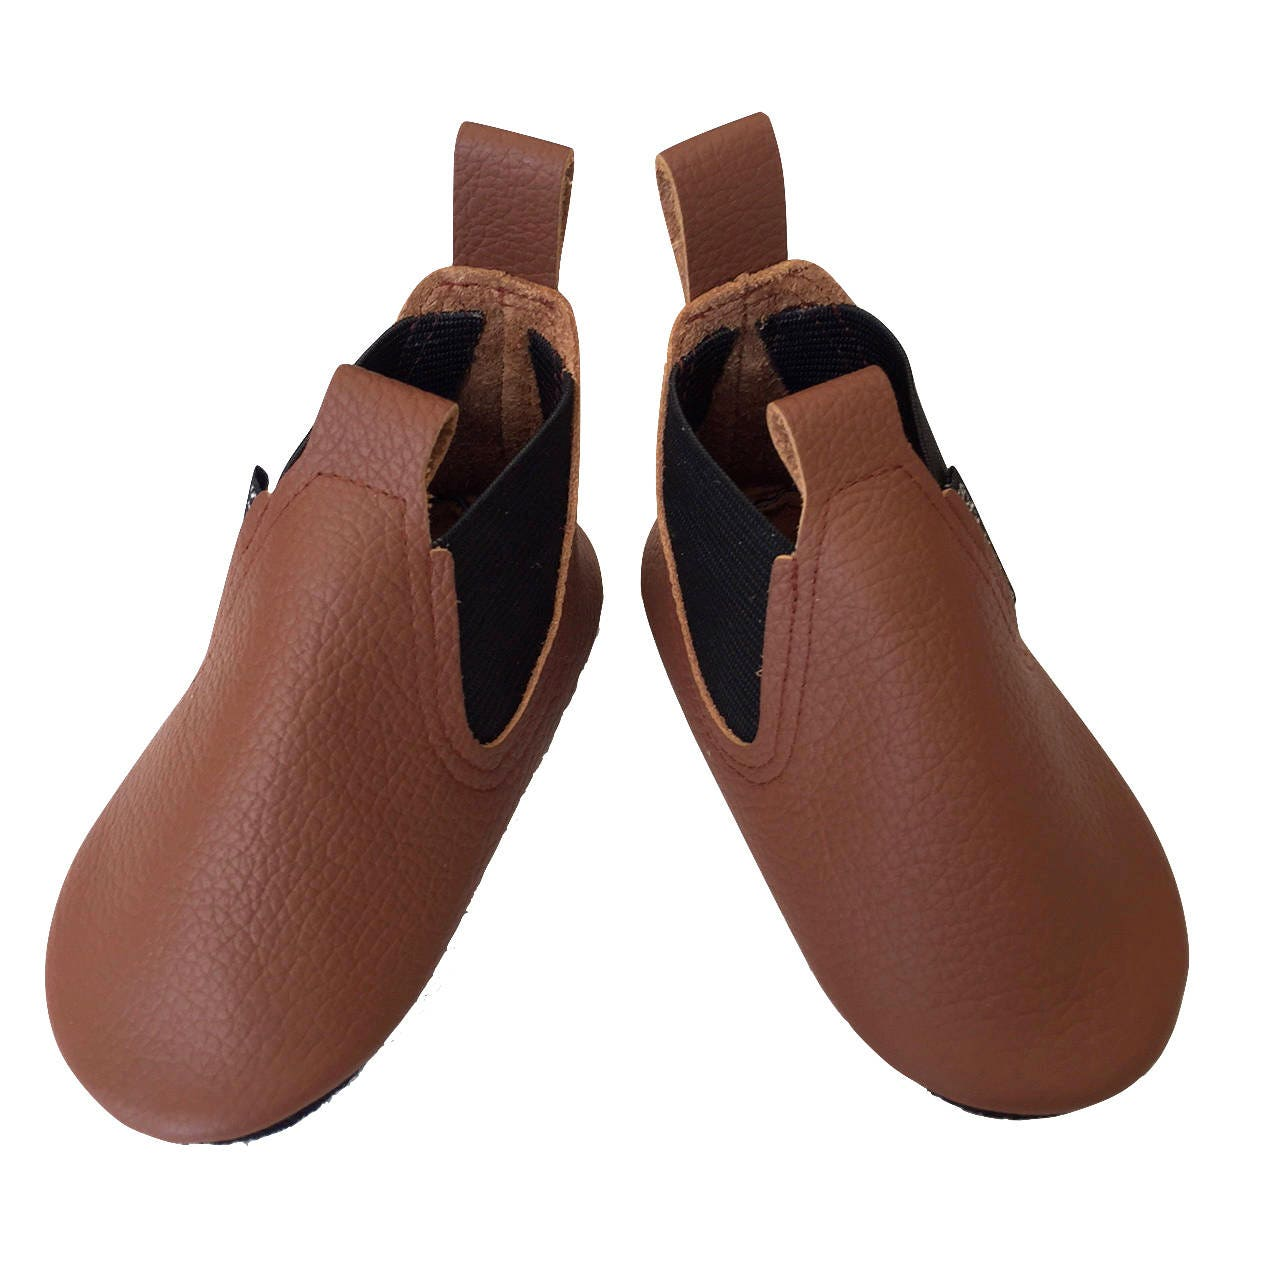 0d5adeed31fe2 Brown Baby Boots Toddler Boy Boots leather baby shoes